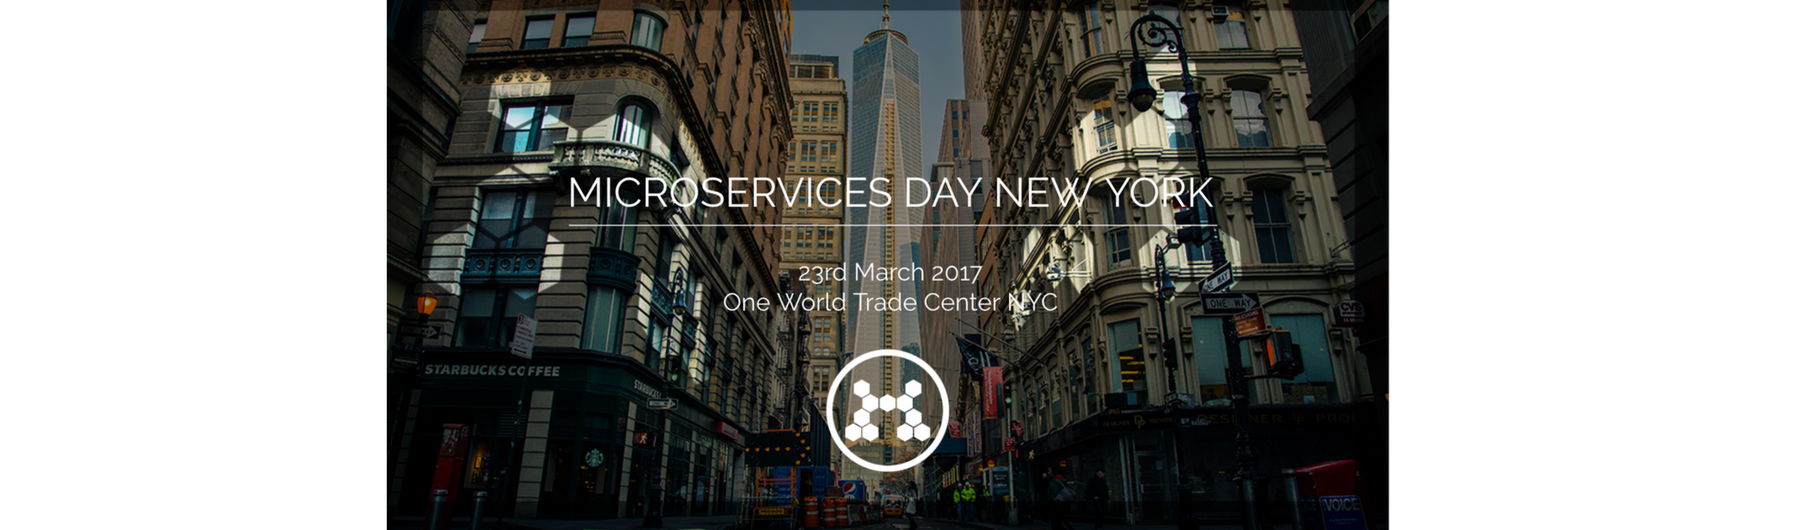 Microservices Day NYC